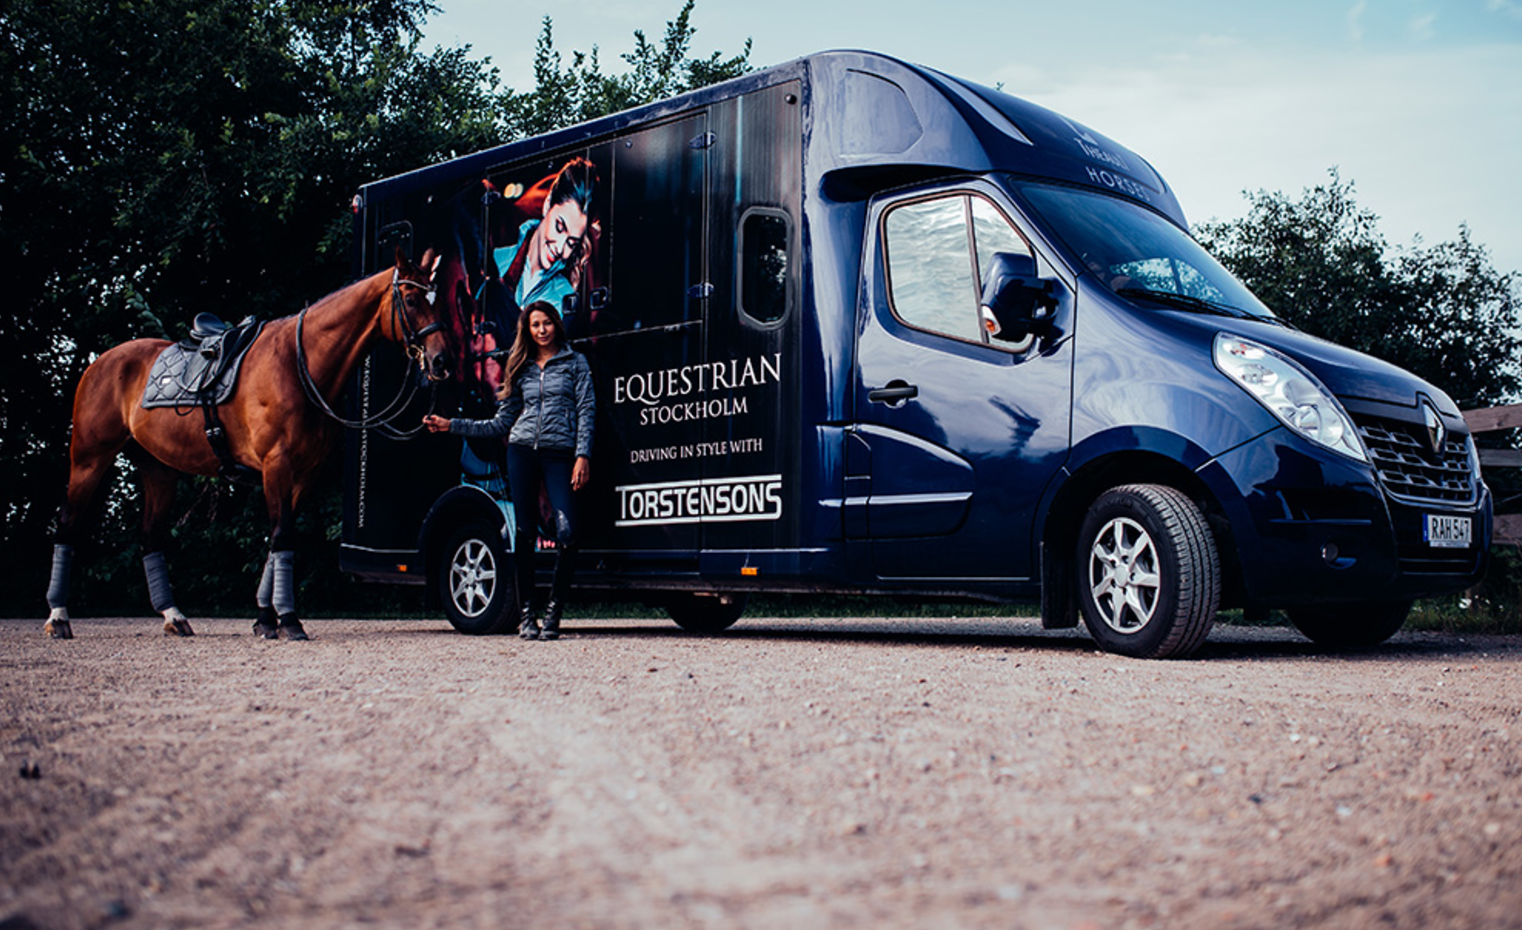 Equestrian Stockholm Fall Collection